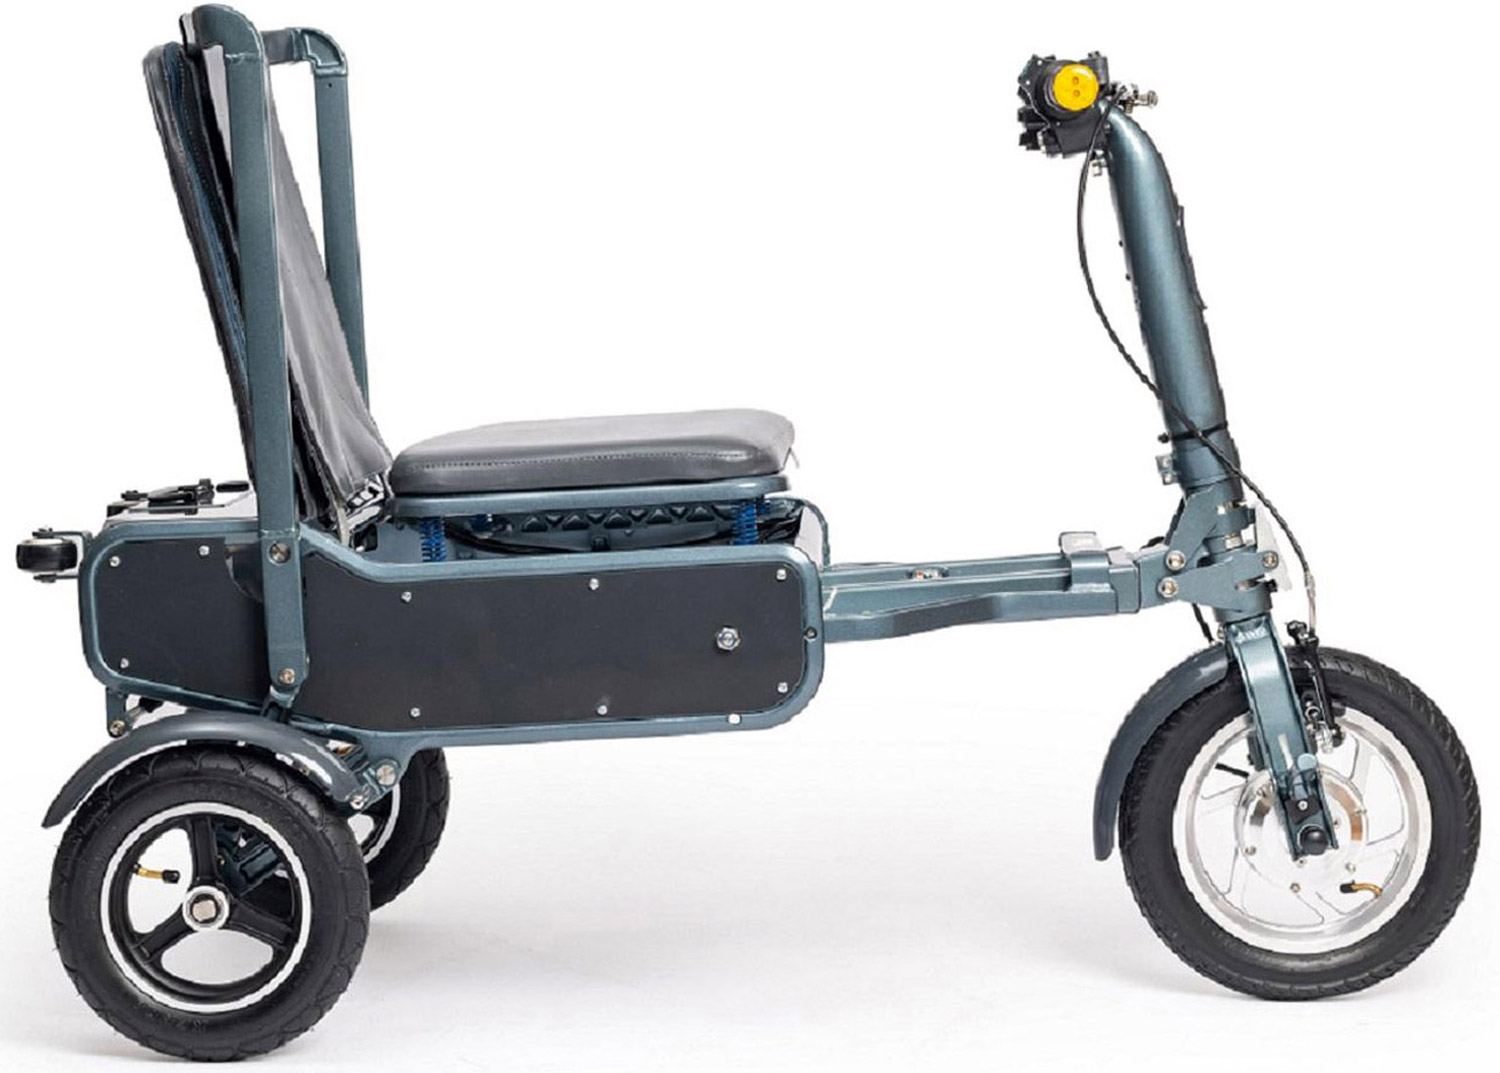 eFOLDi Scooter